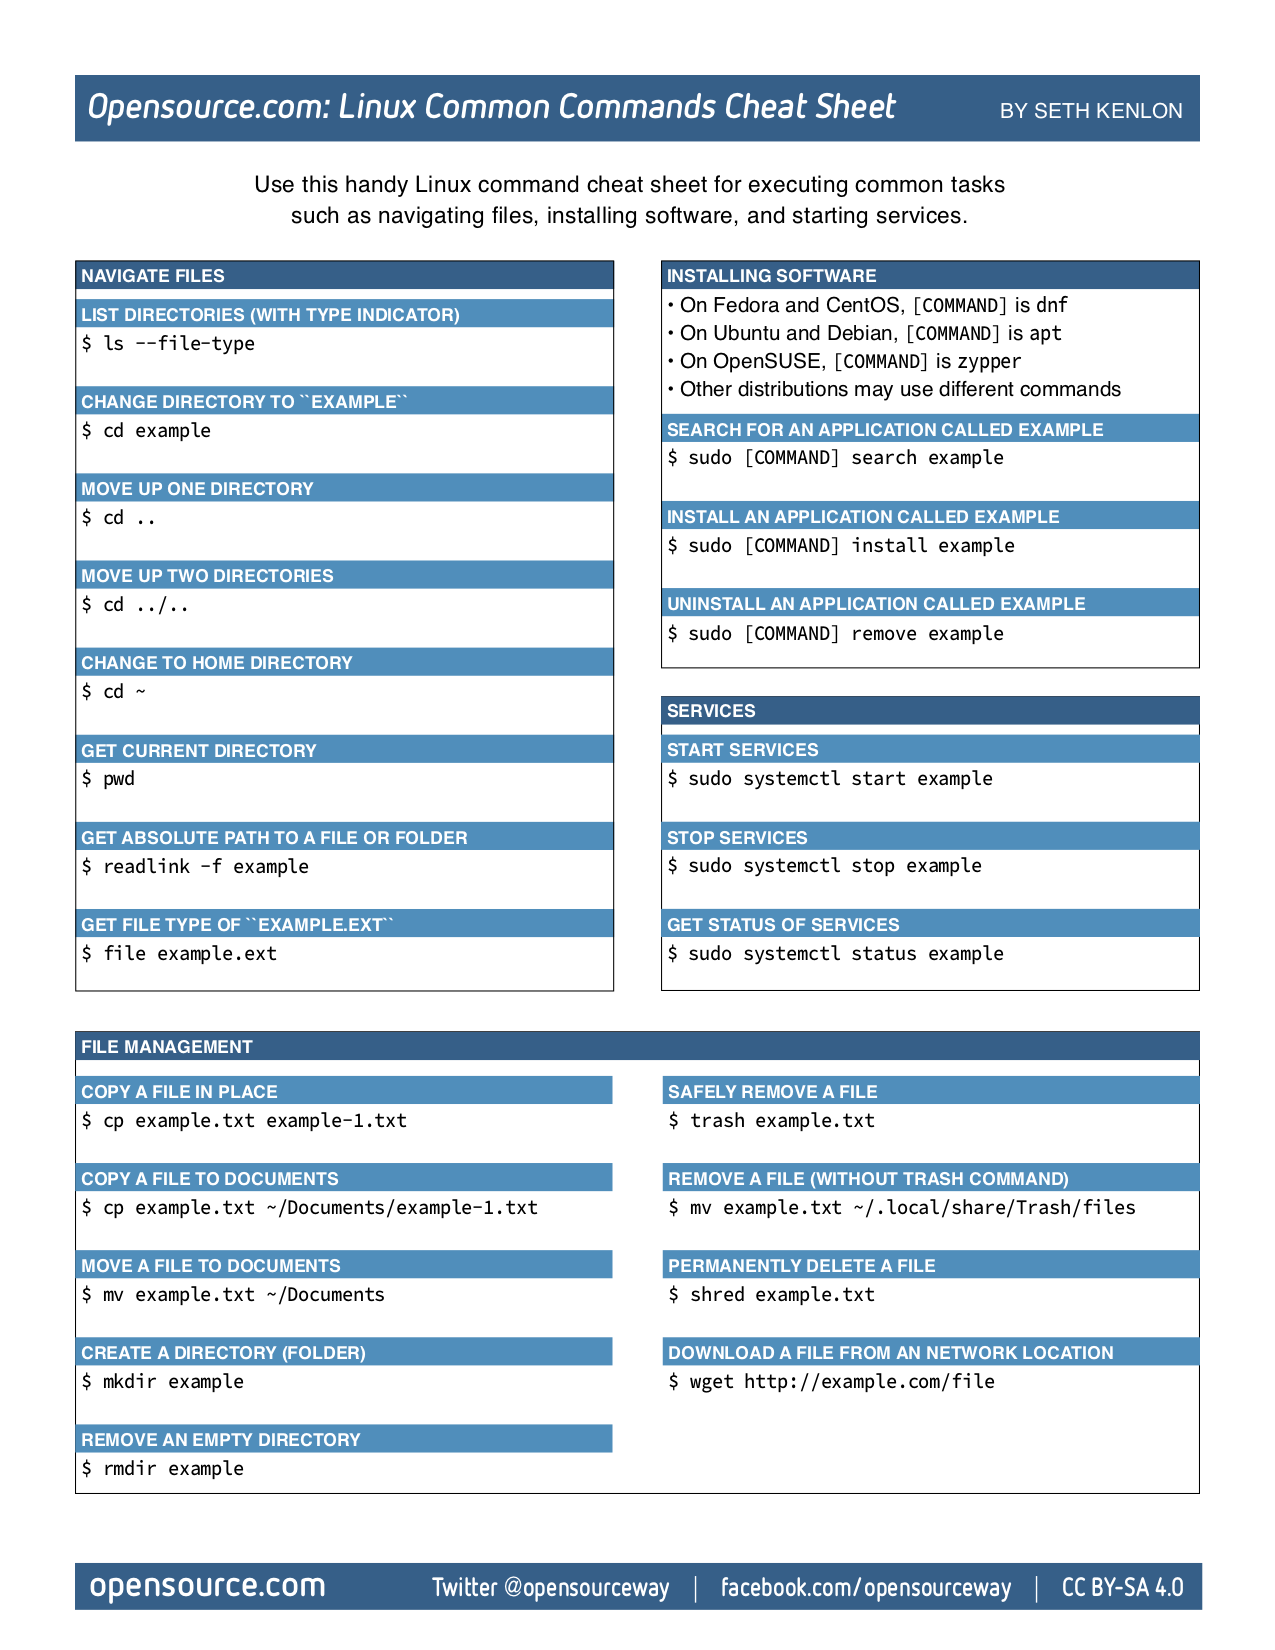 Linux commands cheat sheet for common tasks